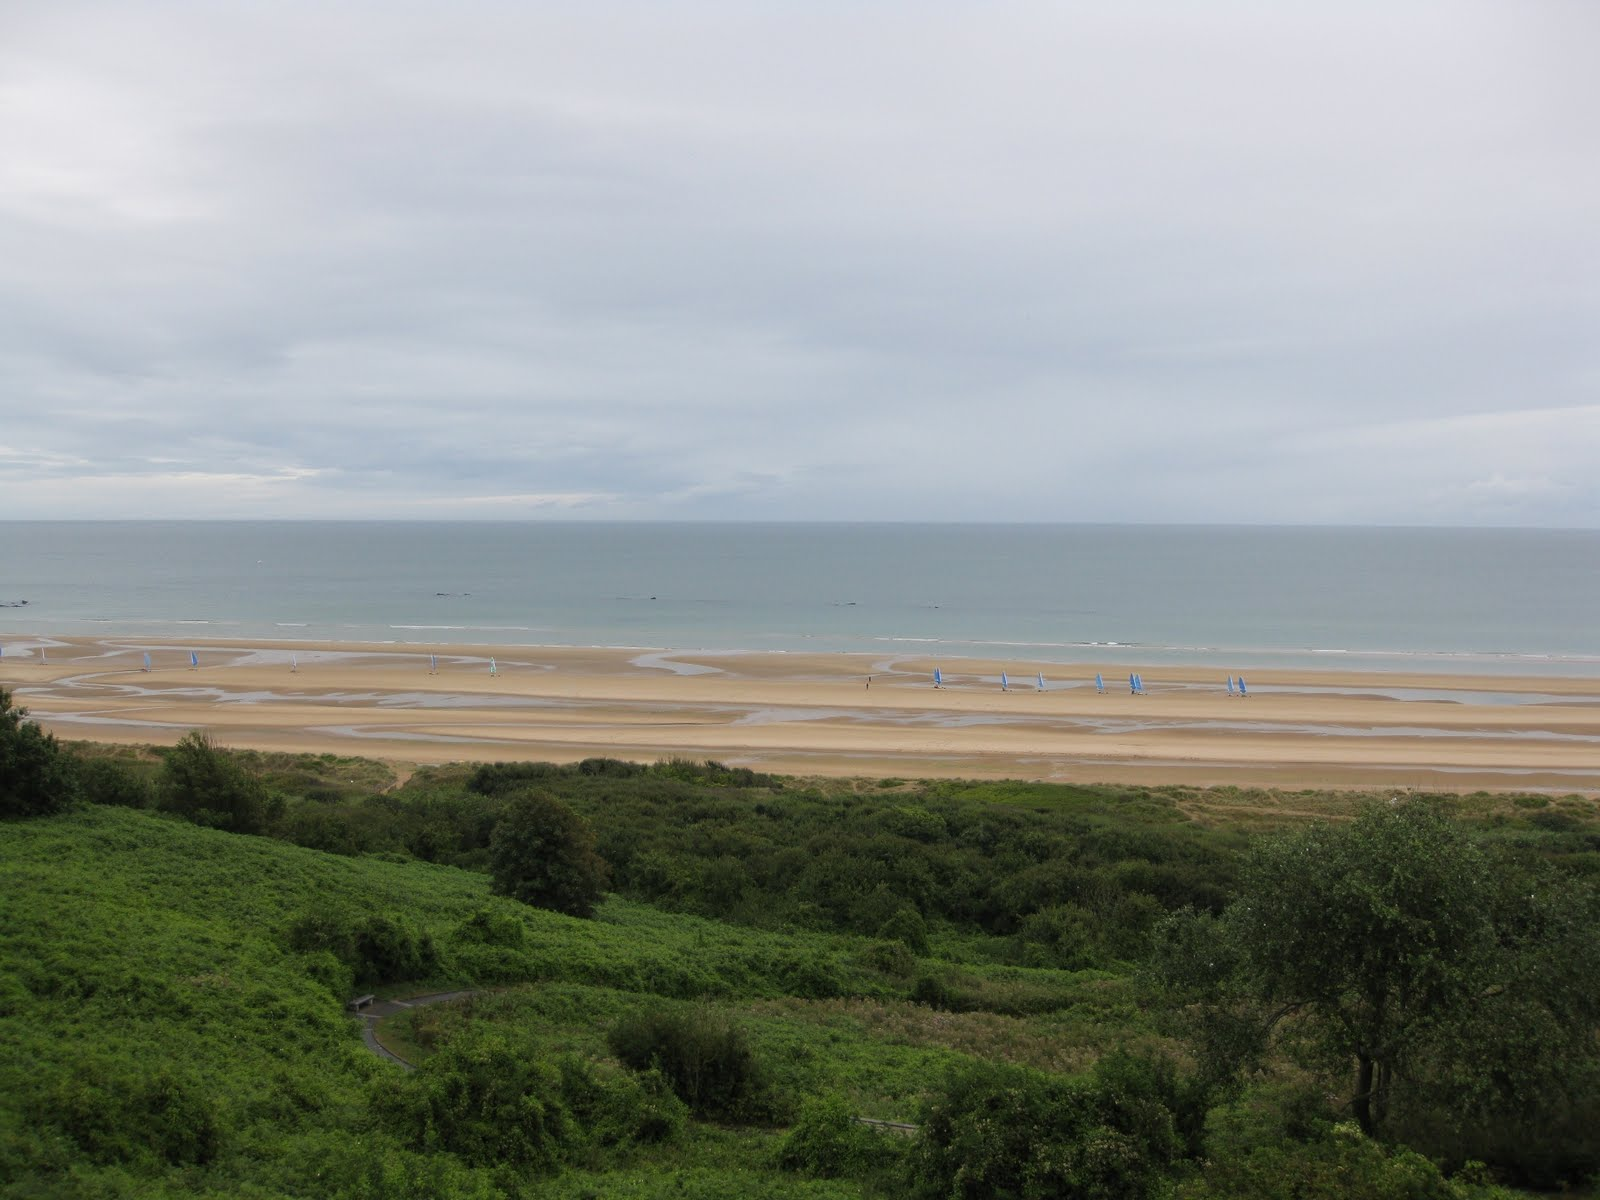 Here is Omaha Beach: